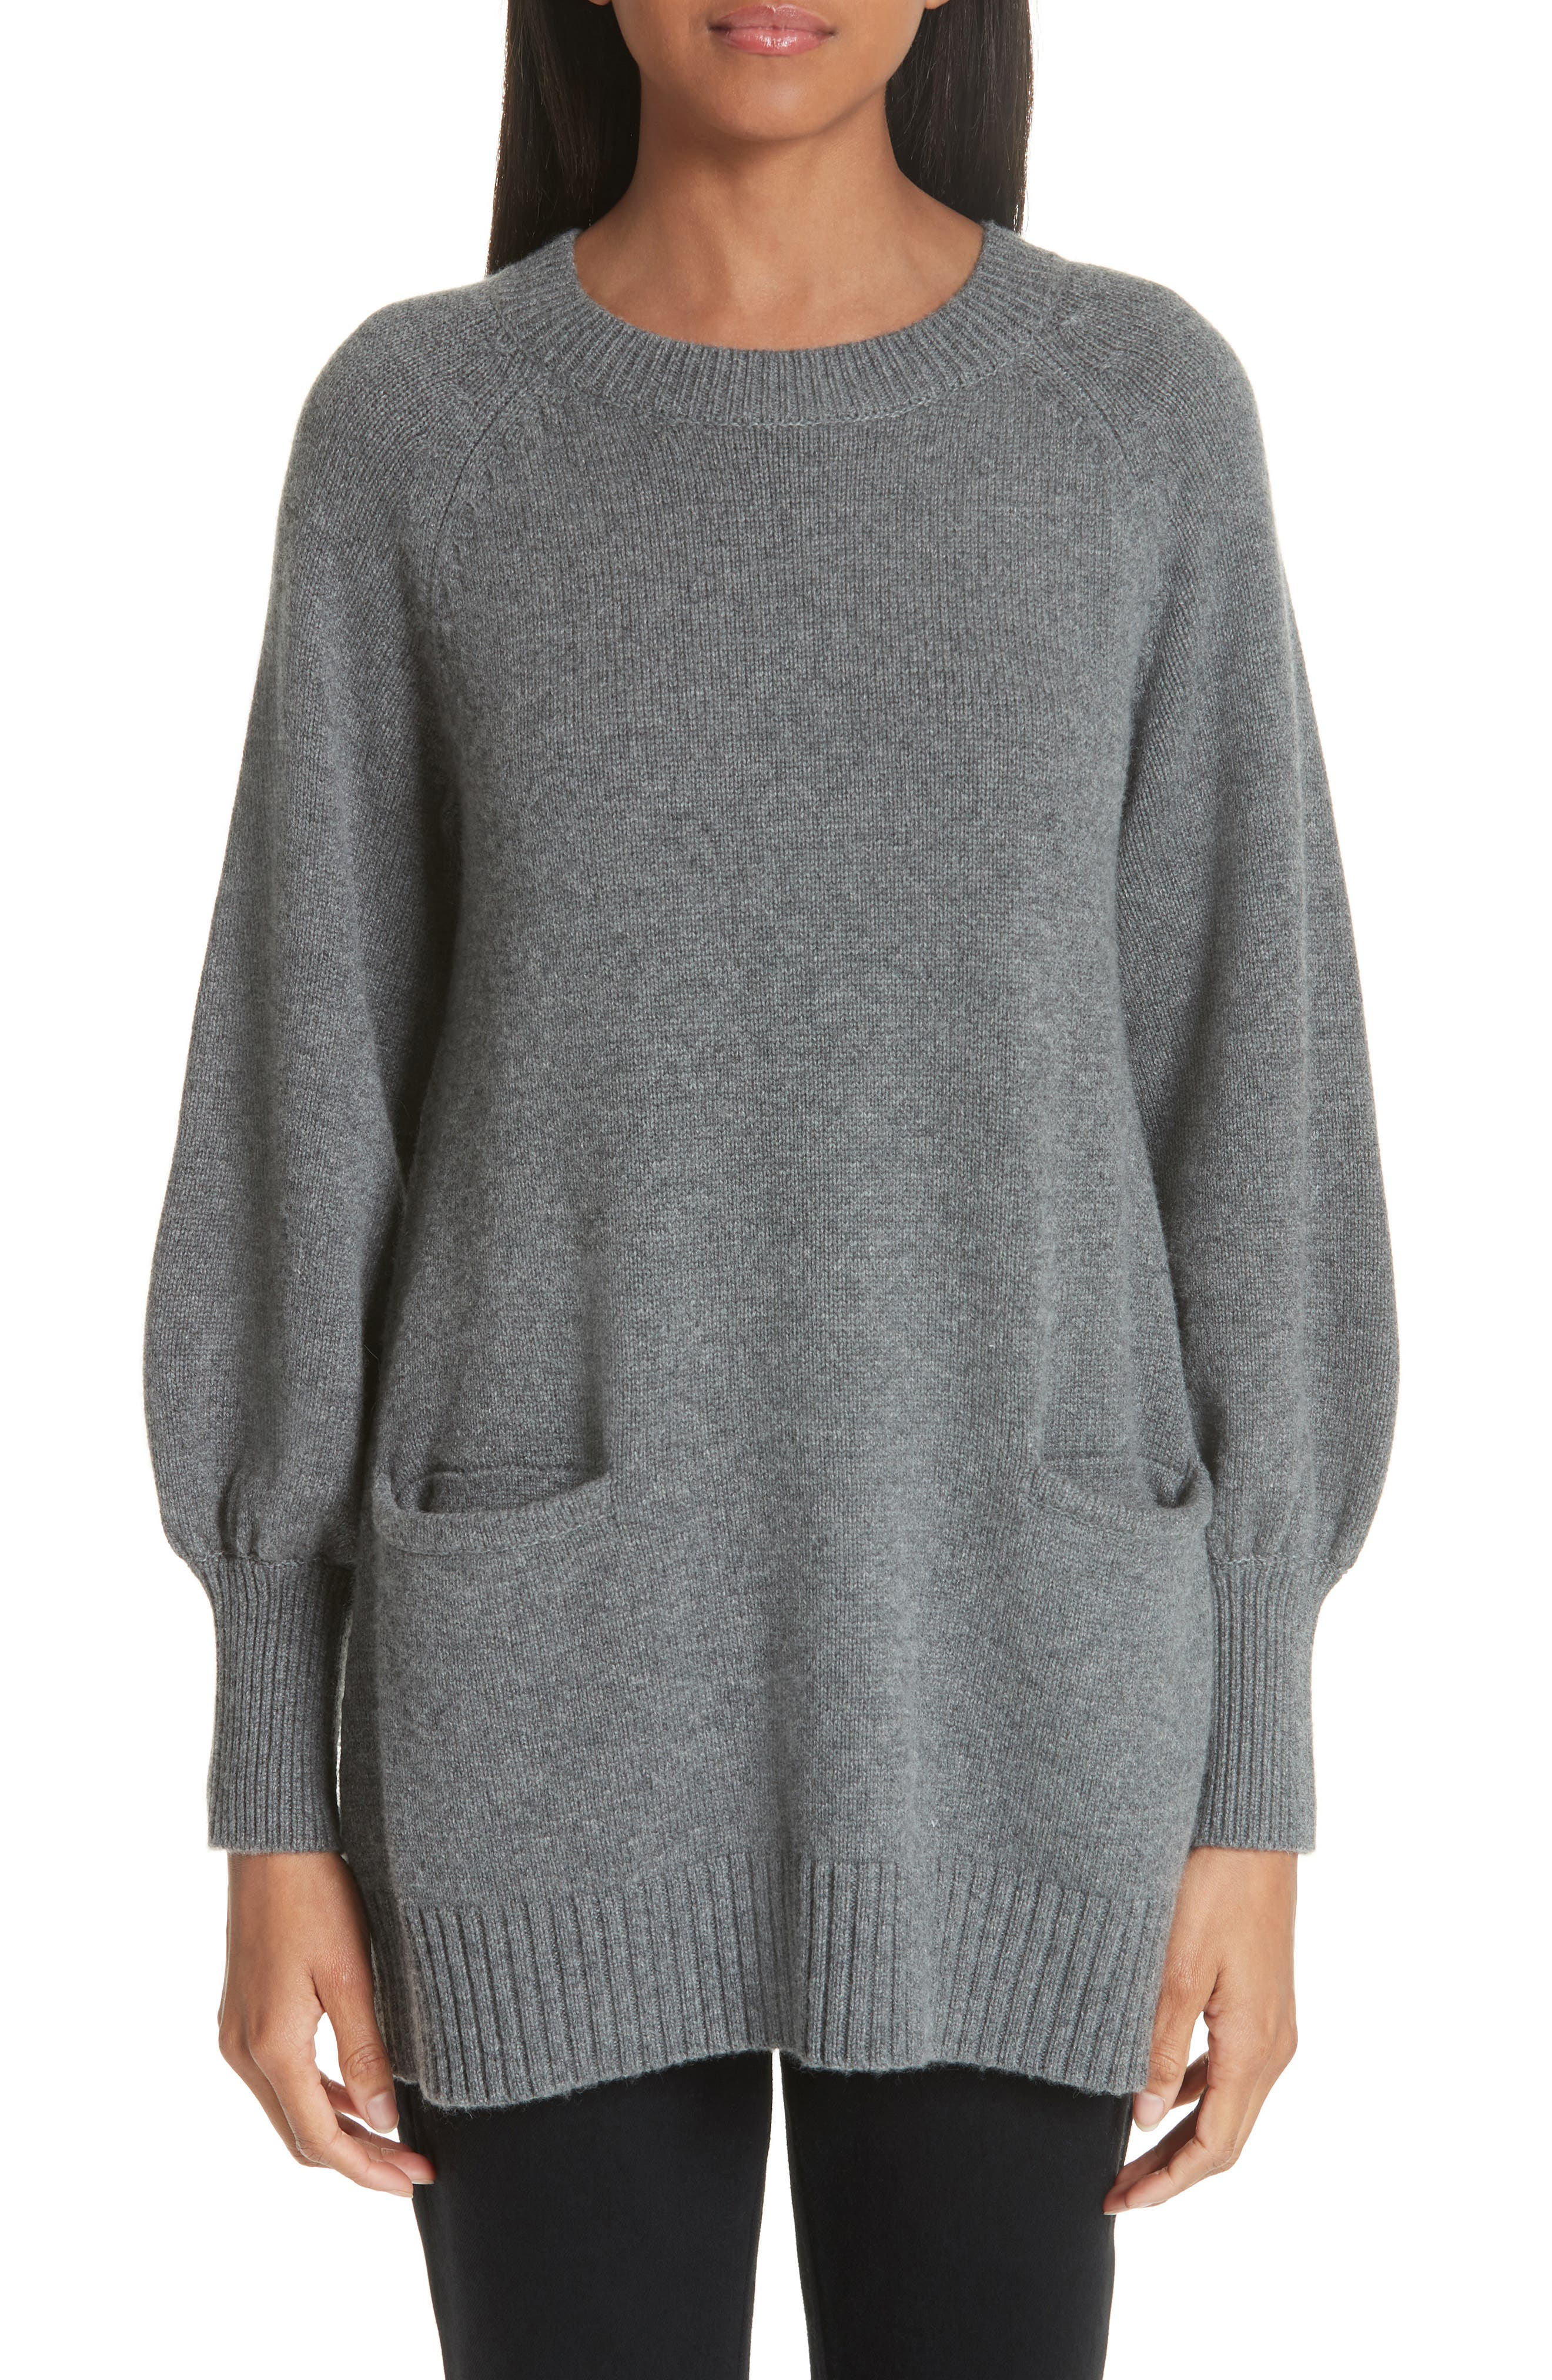 CO, Wool & Cashmere Tunic Sweater, Main thumbnail 1, color, GREY